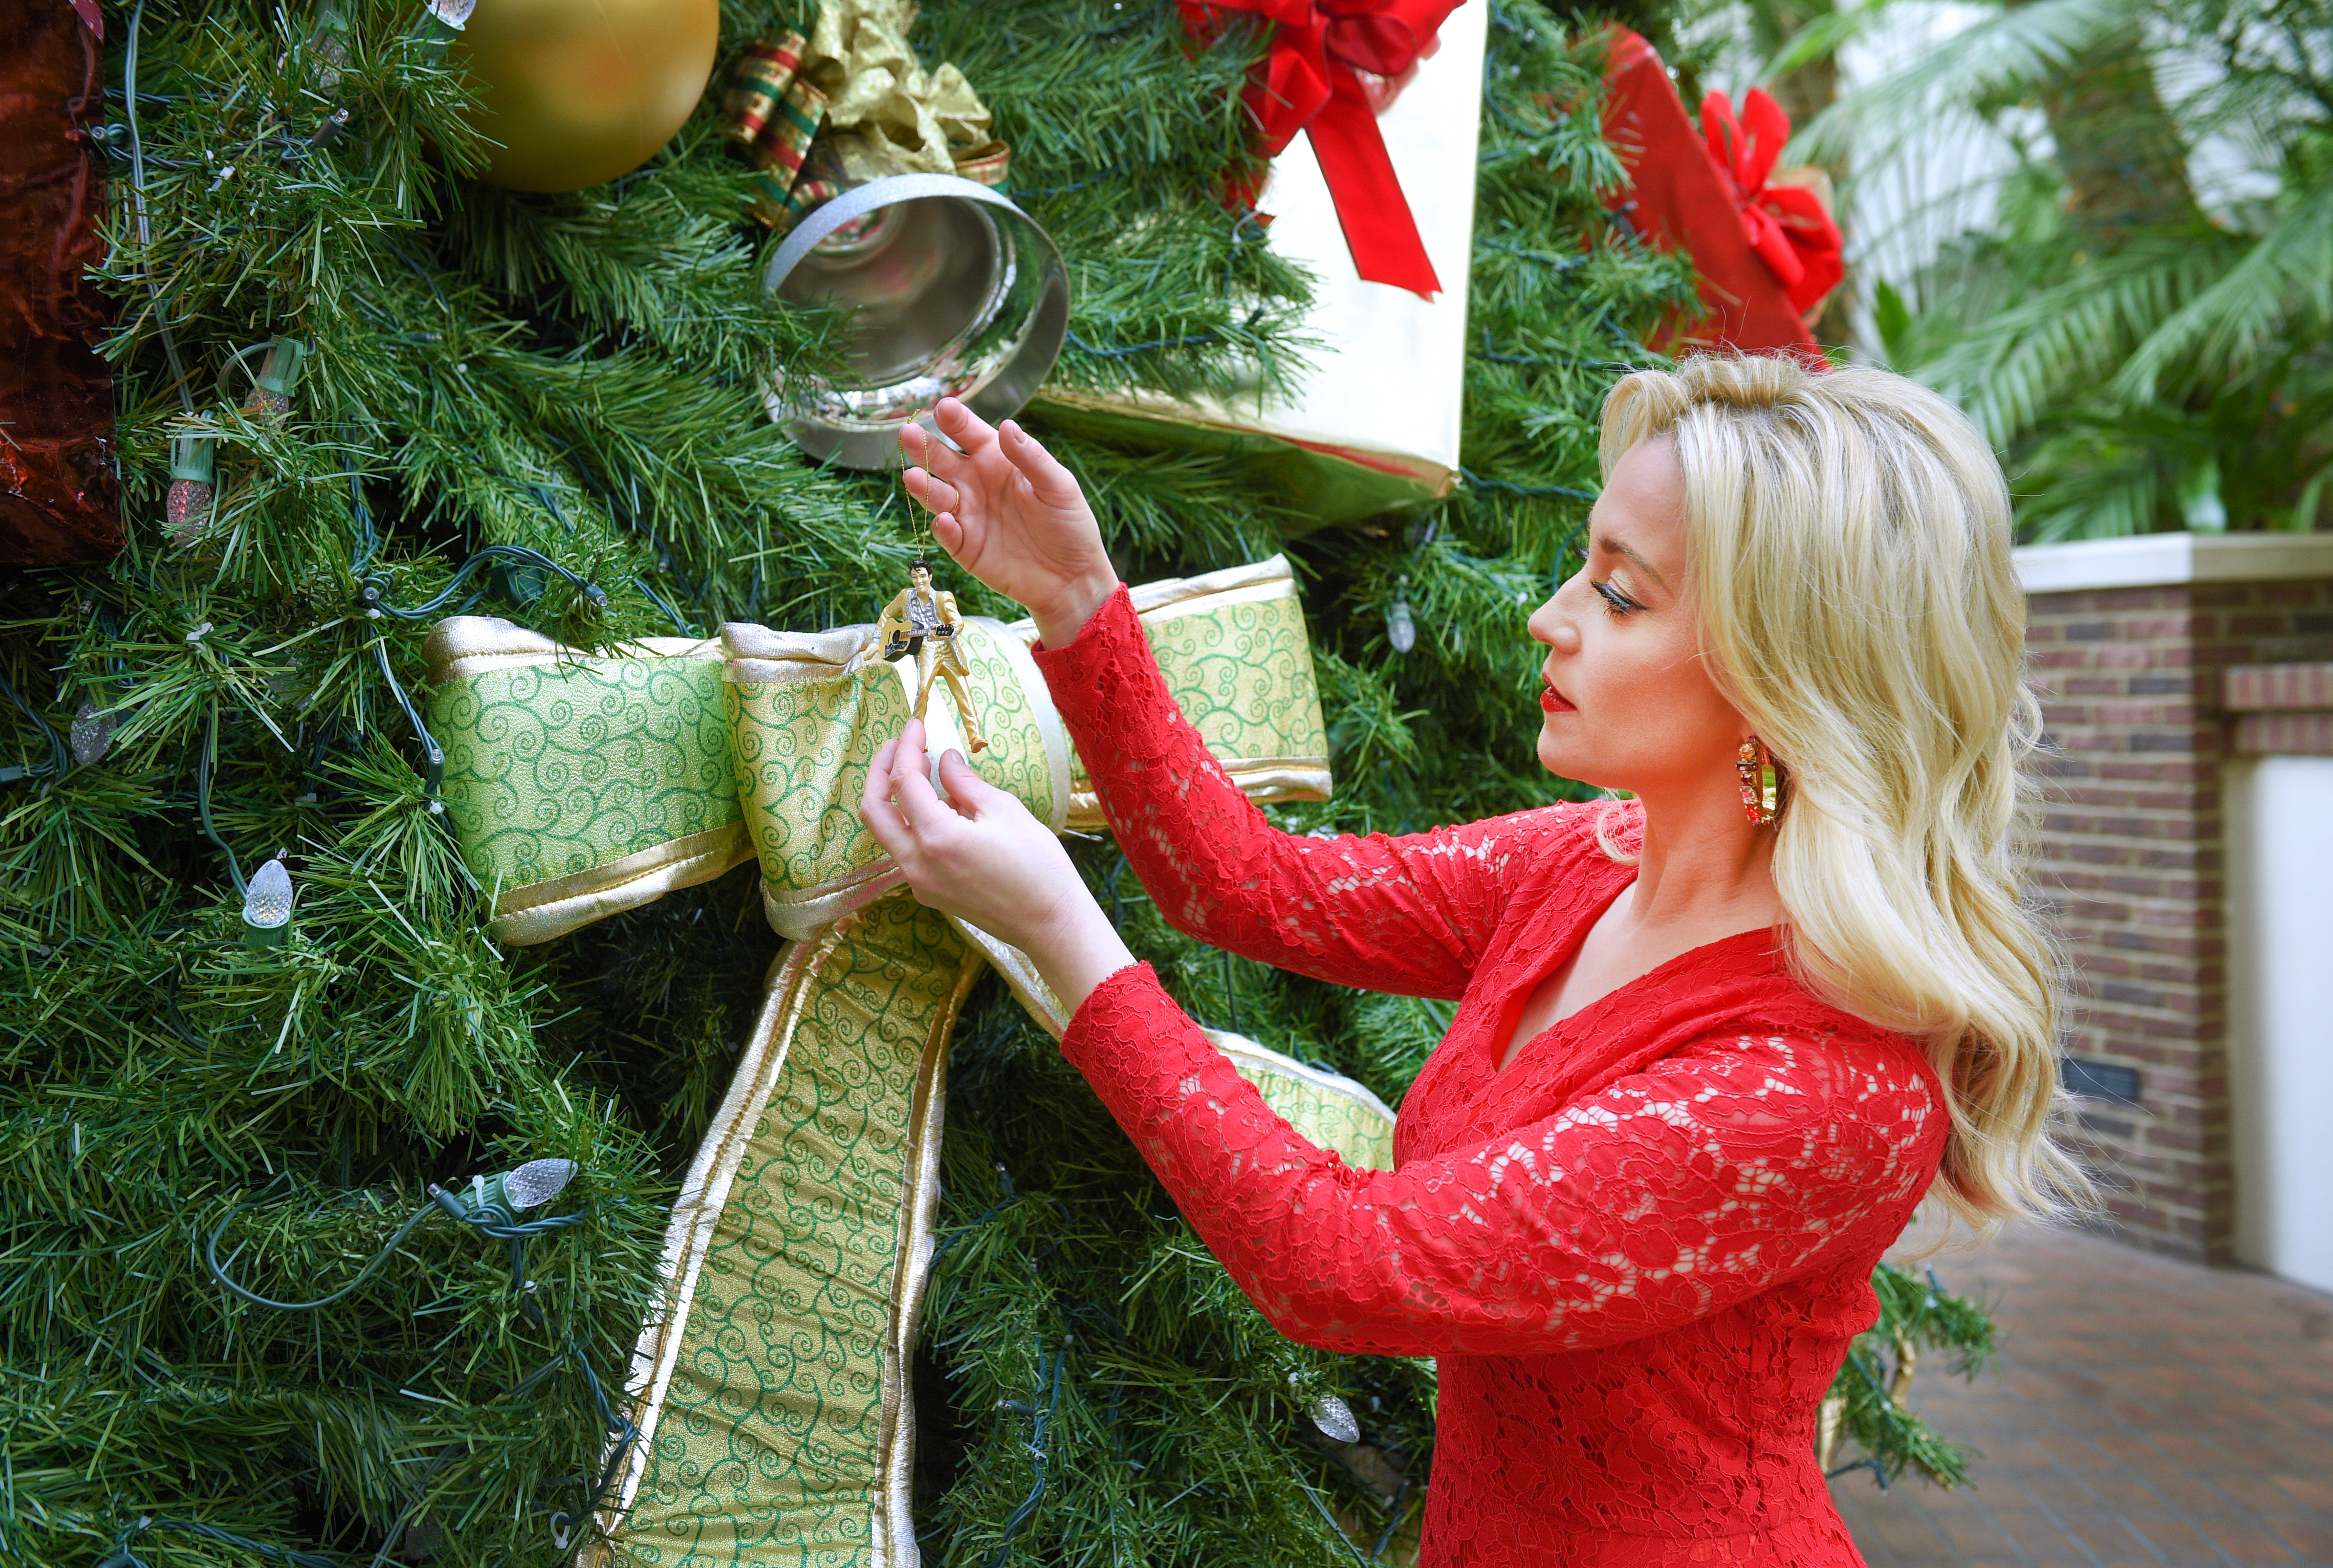 NASHVILLE, TN - NOVEMBER 05: American country music artist and Emmy-nominated television personality Kellie Pickler is seen hanging a Christmas ornament at the Gaylord Opryland Resort on November 5, 2018 in Nashville, Tennessee. (Photo by Jason Kempin/Getty Images for Status PR)